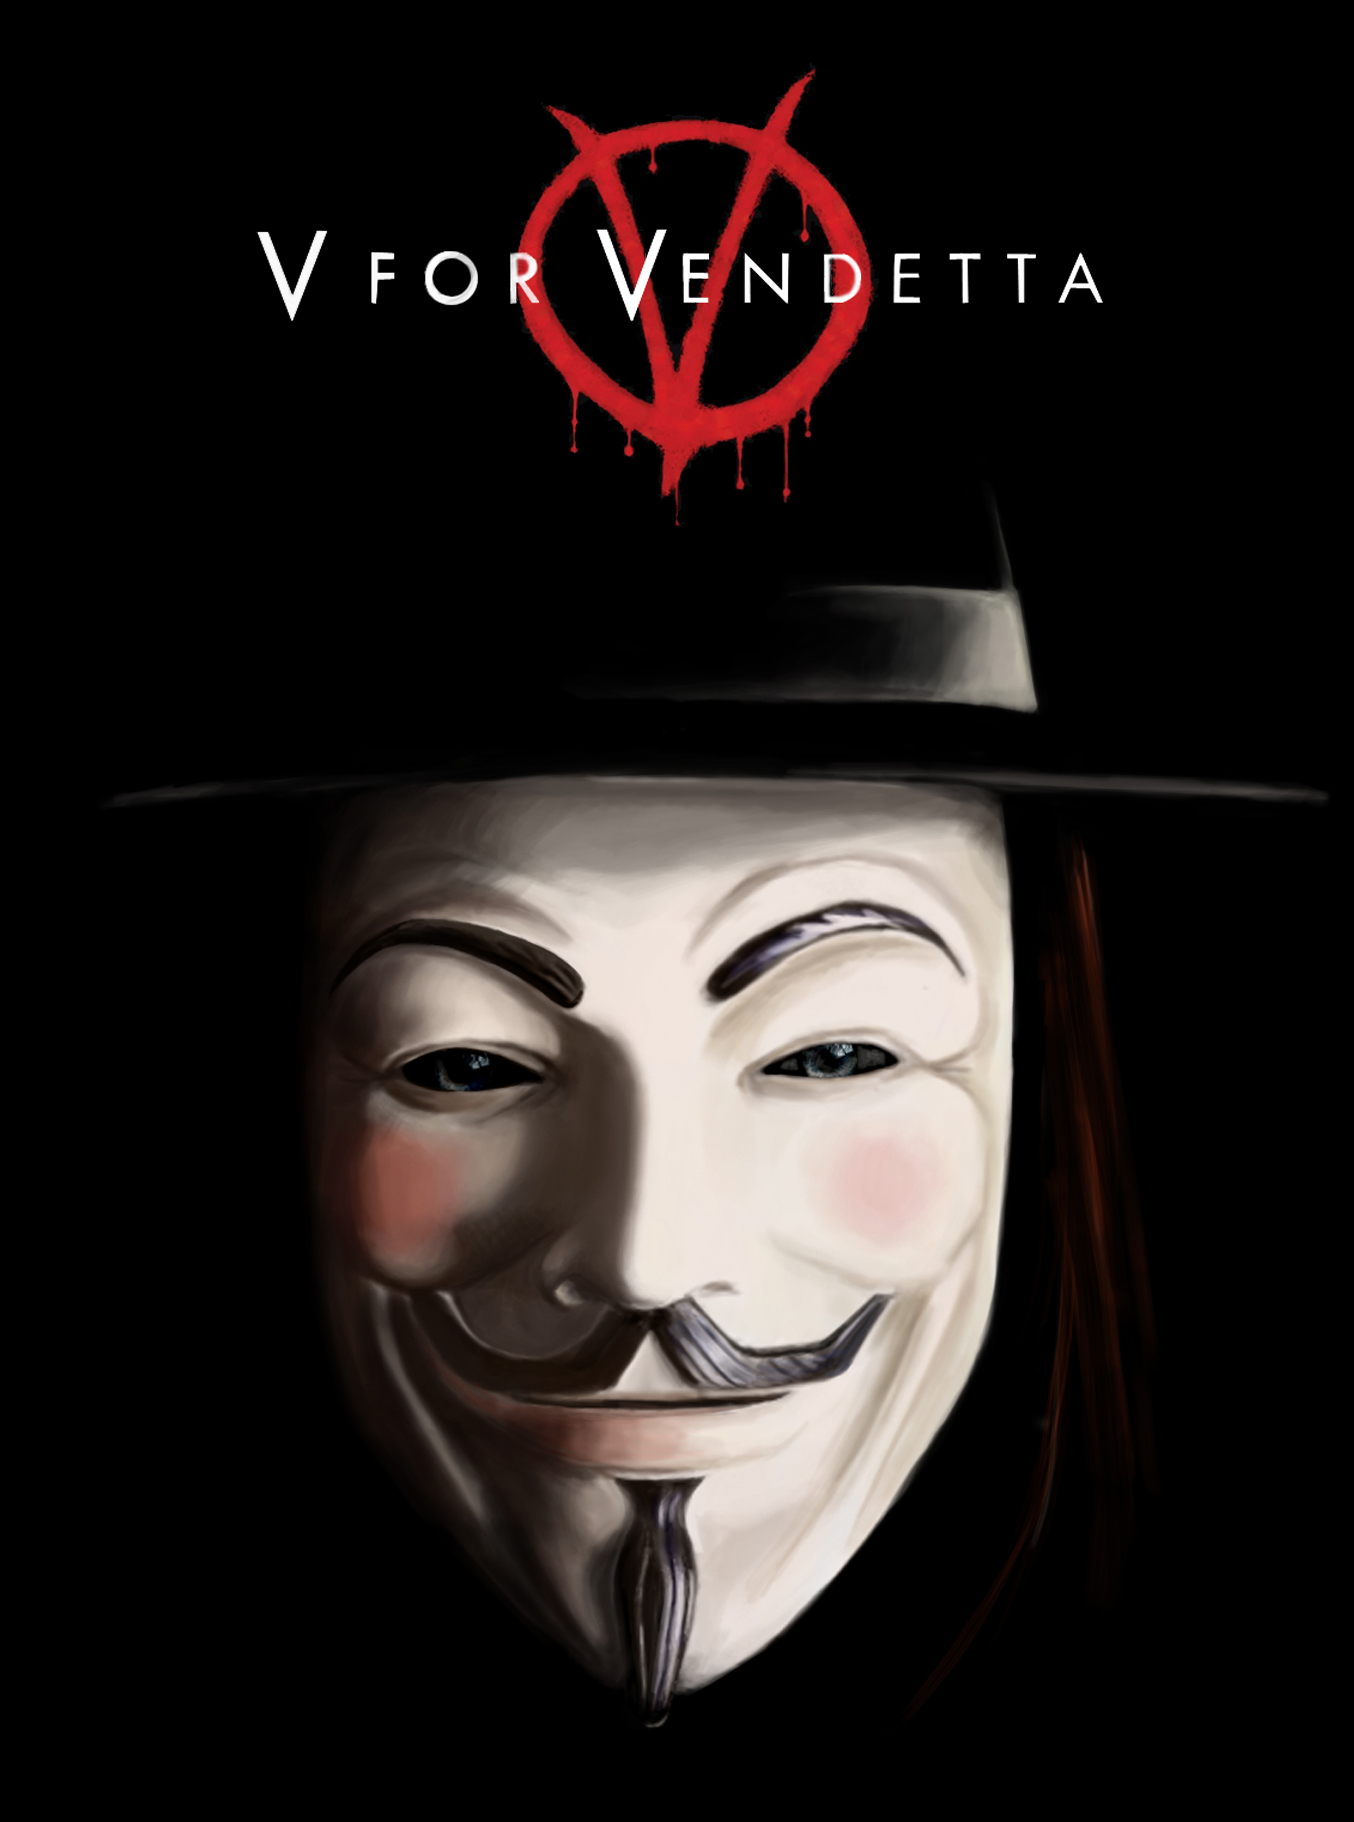 for Vendetta  20...V For Vendetta (2005) Film